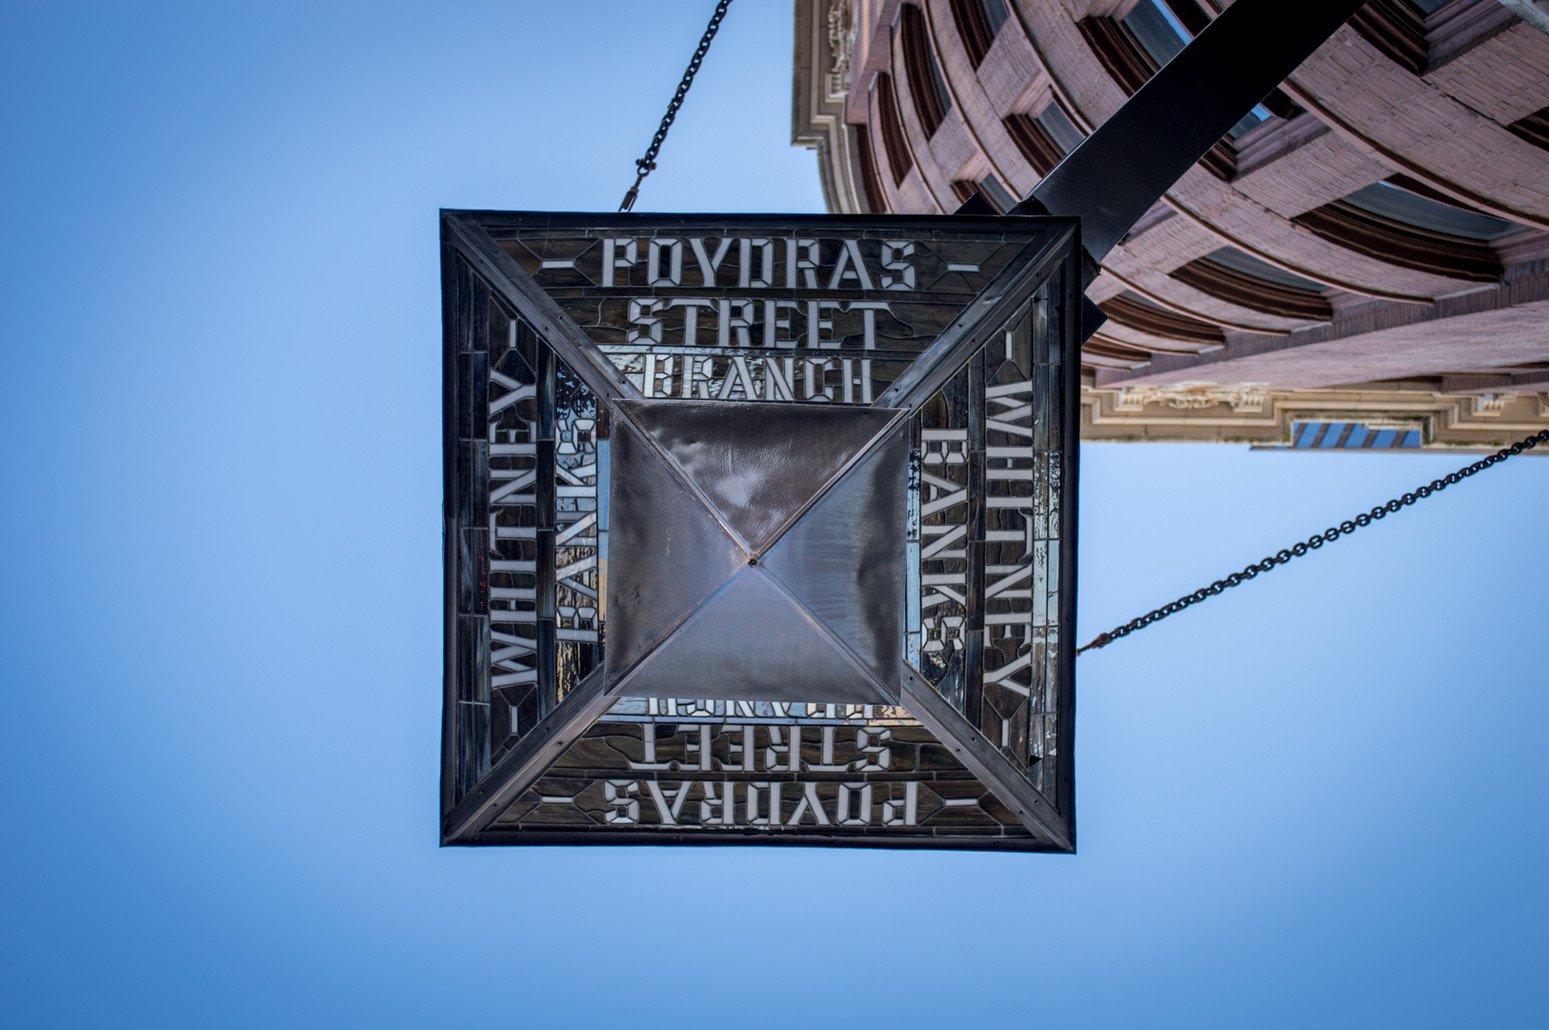 Beautiful stained glass lantern showing the names of the streets in downtown New Orleans.